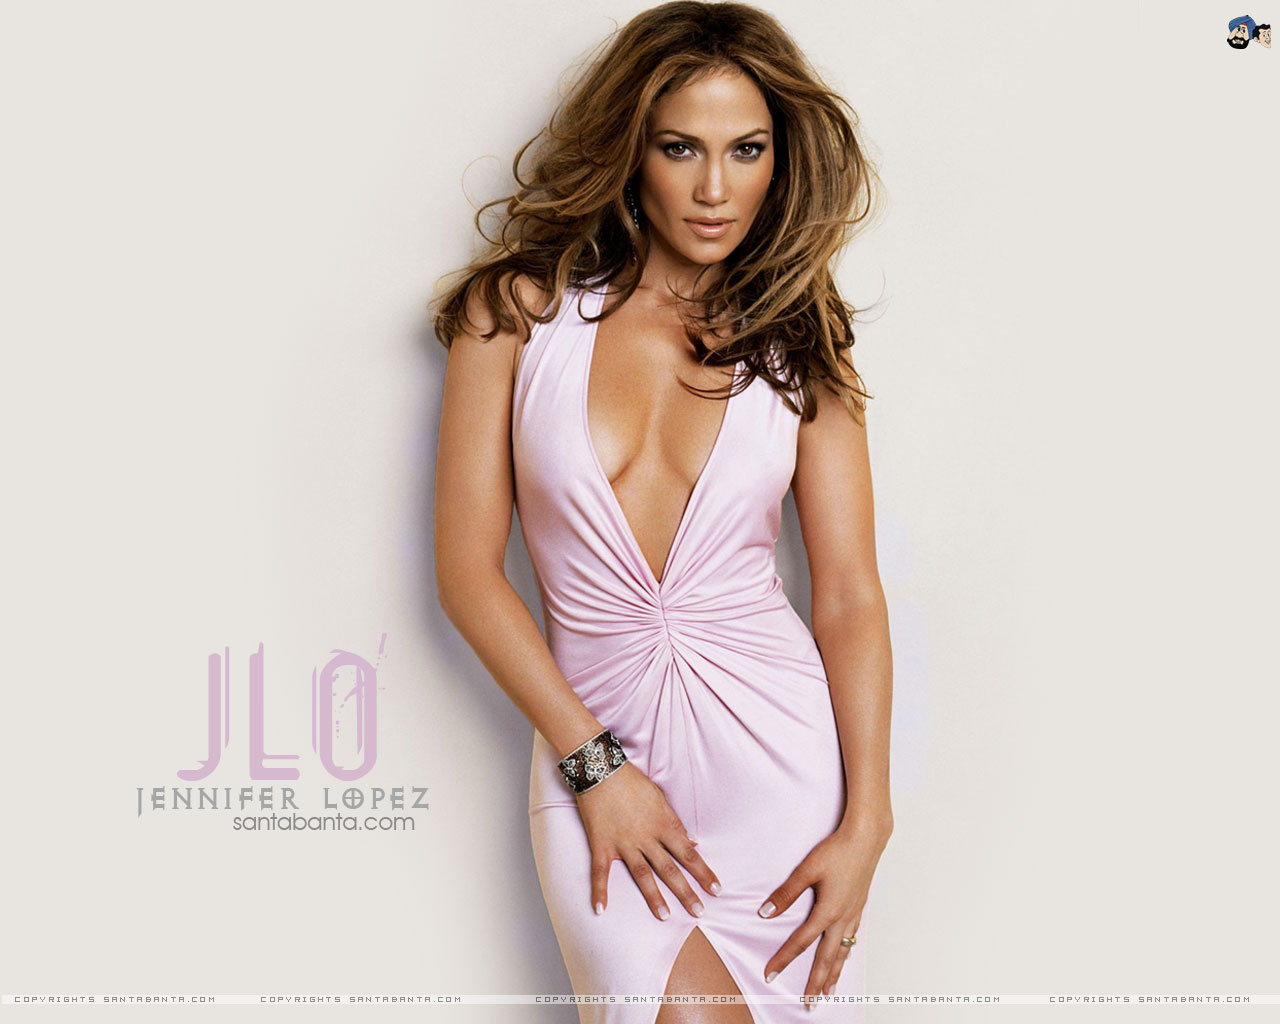 wallpapers de jennifer lopez: